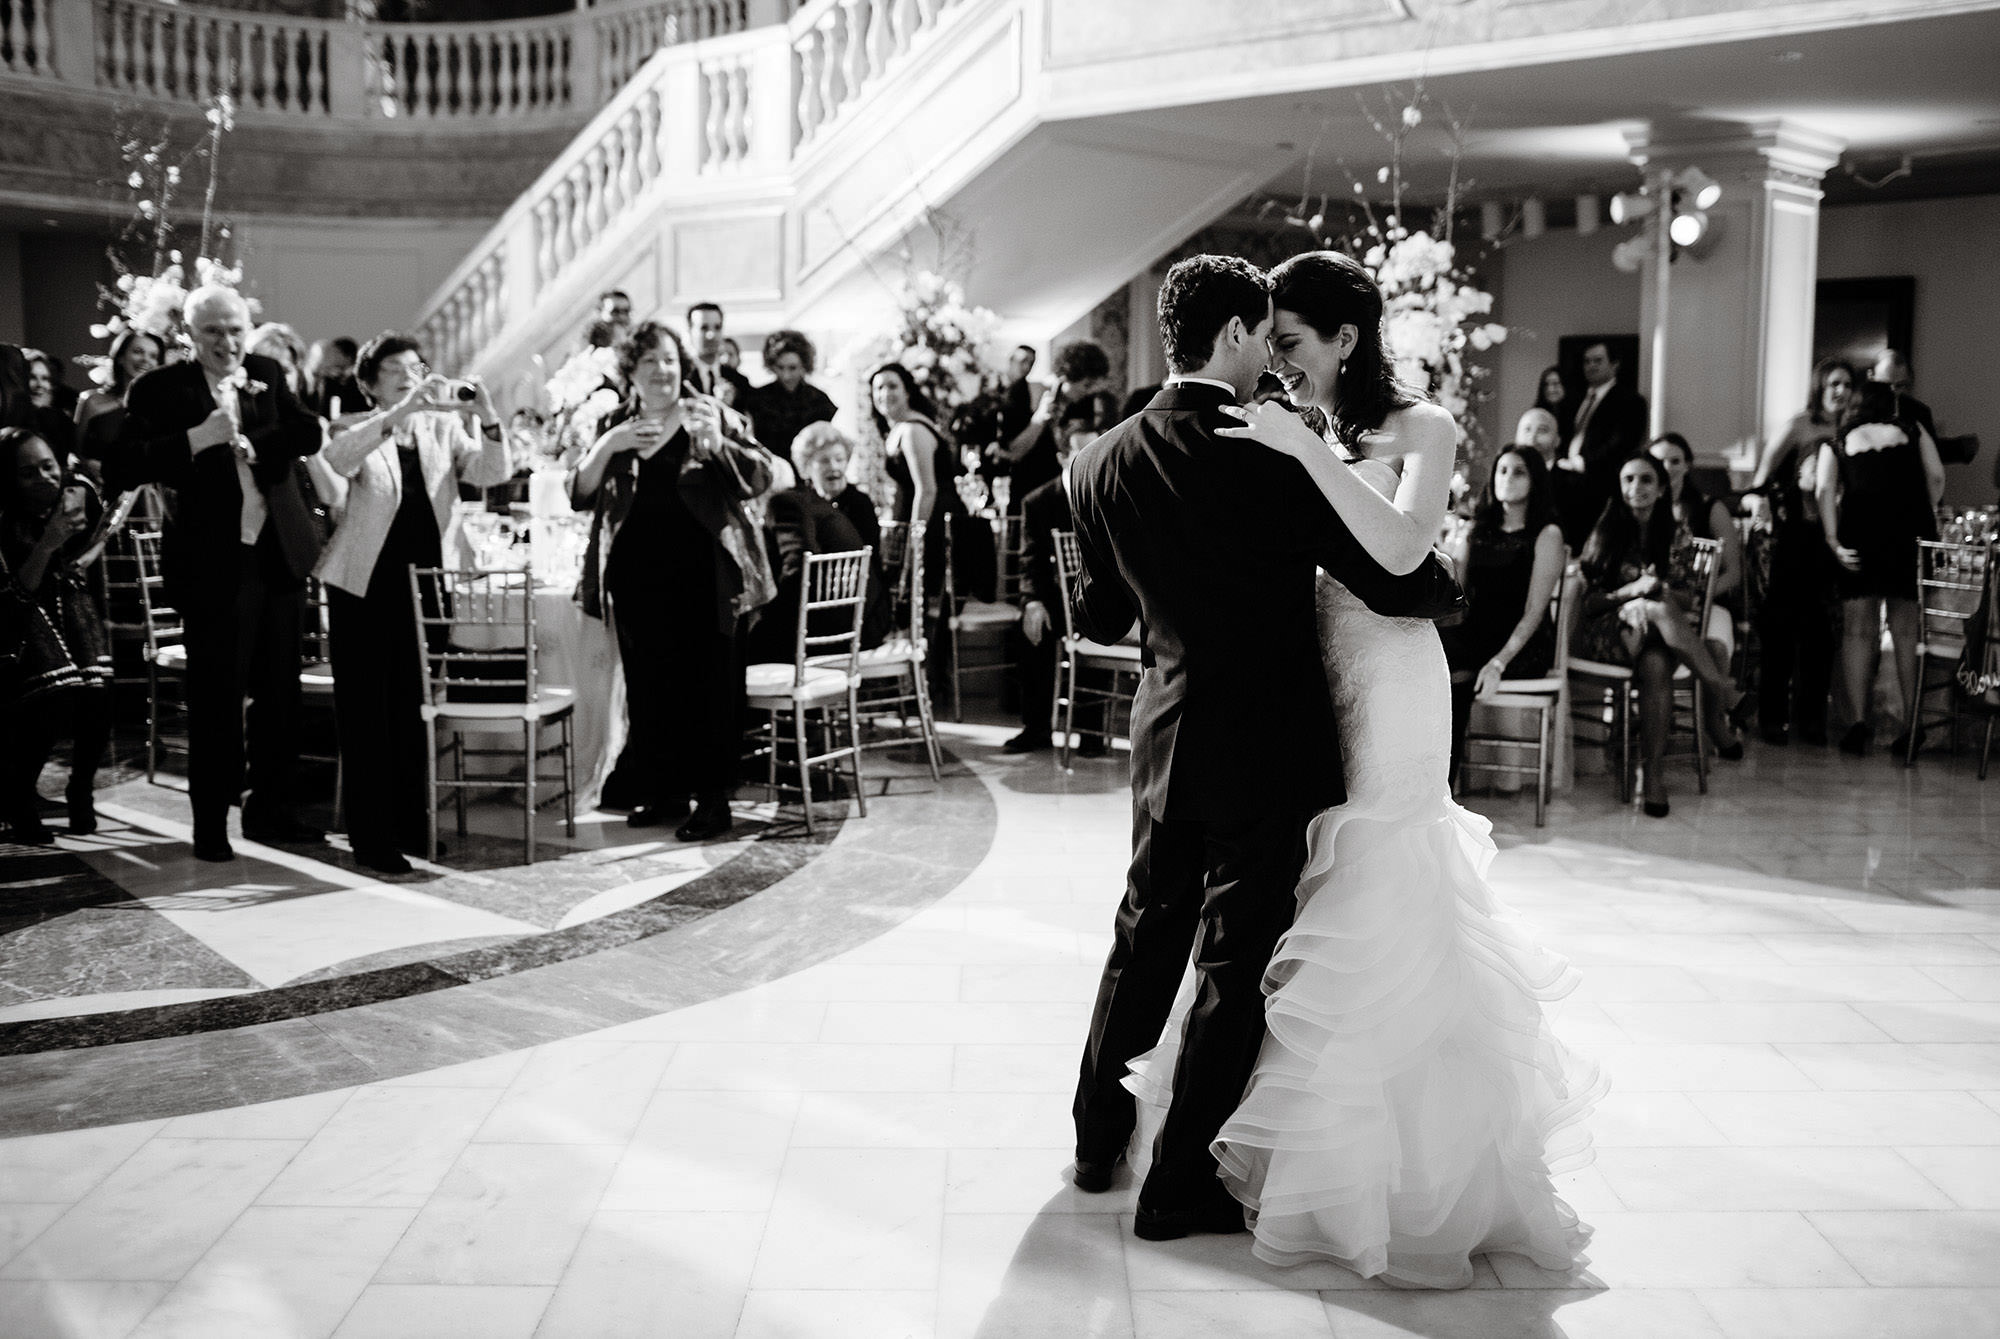 The couple shares their first dance during their wedding at NMWA.